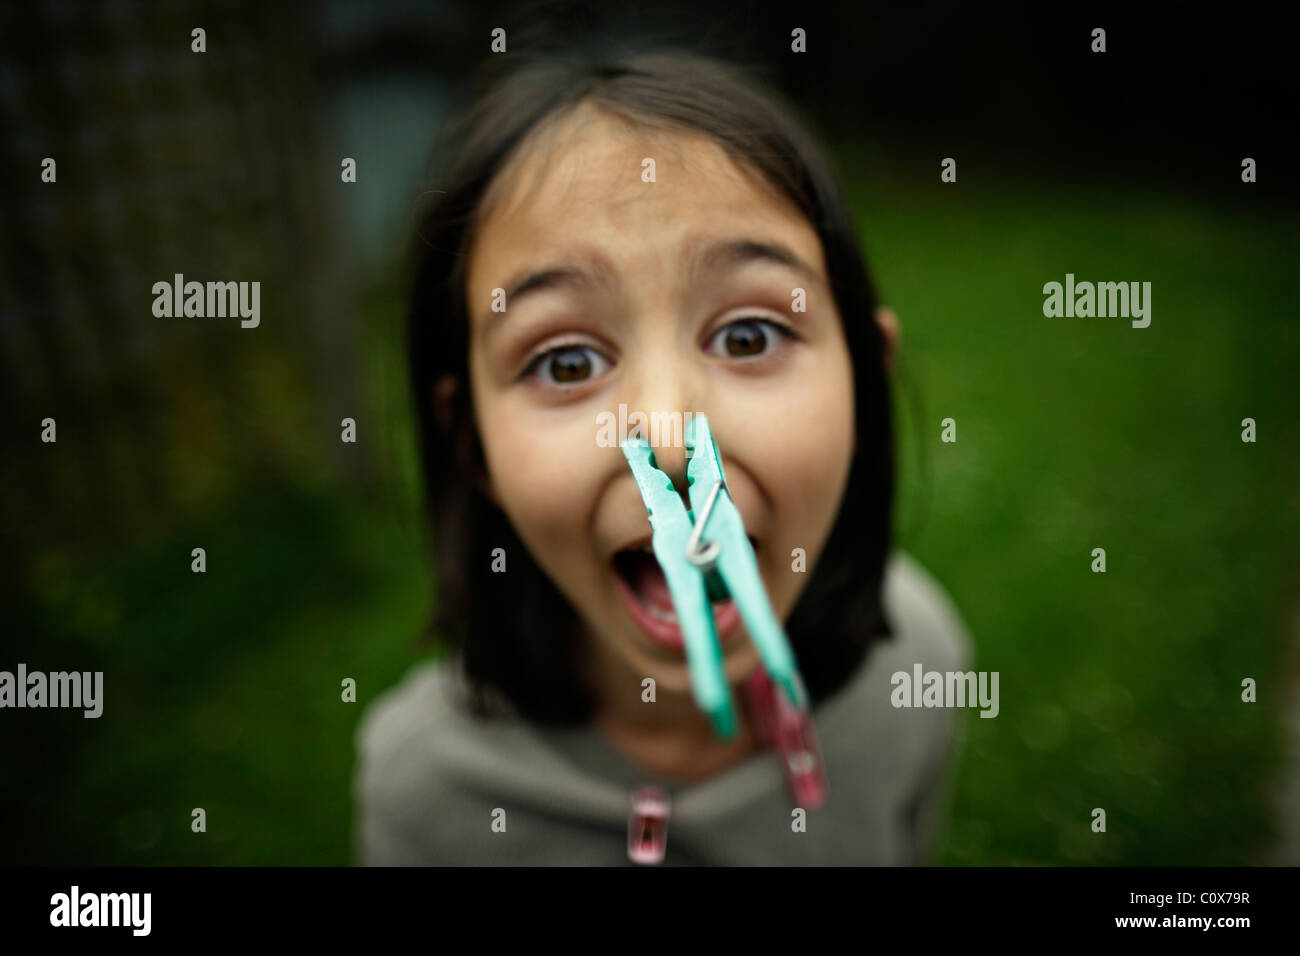 Girl with peg on nose - Stock Image